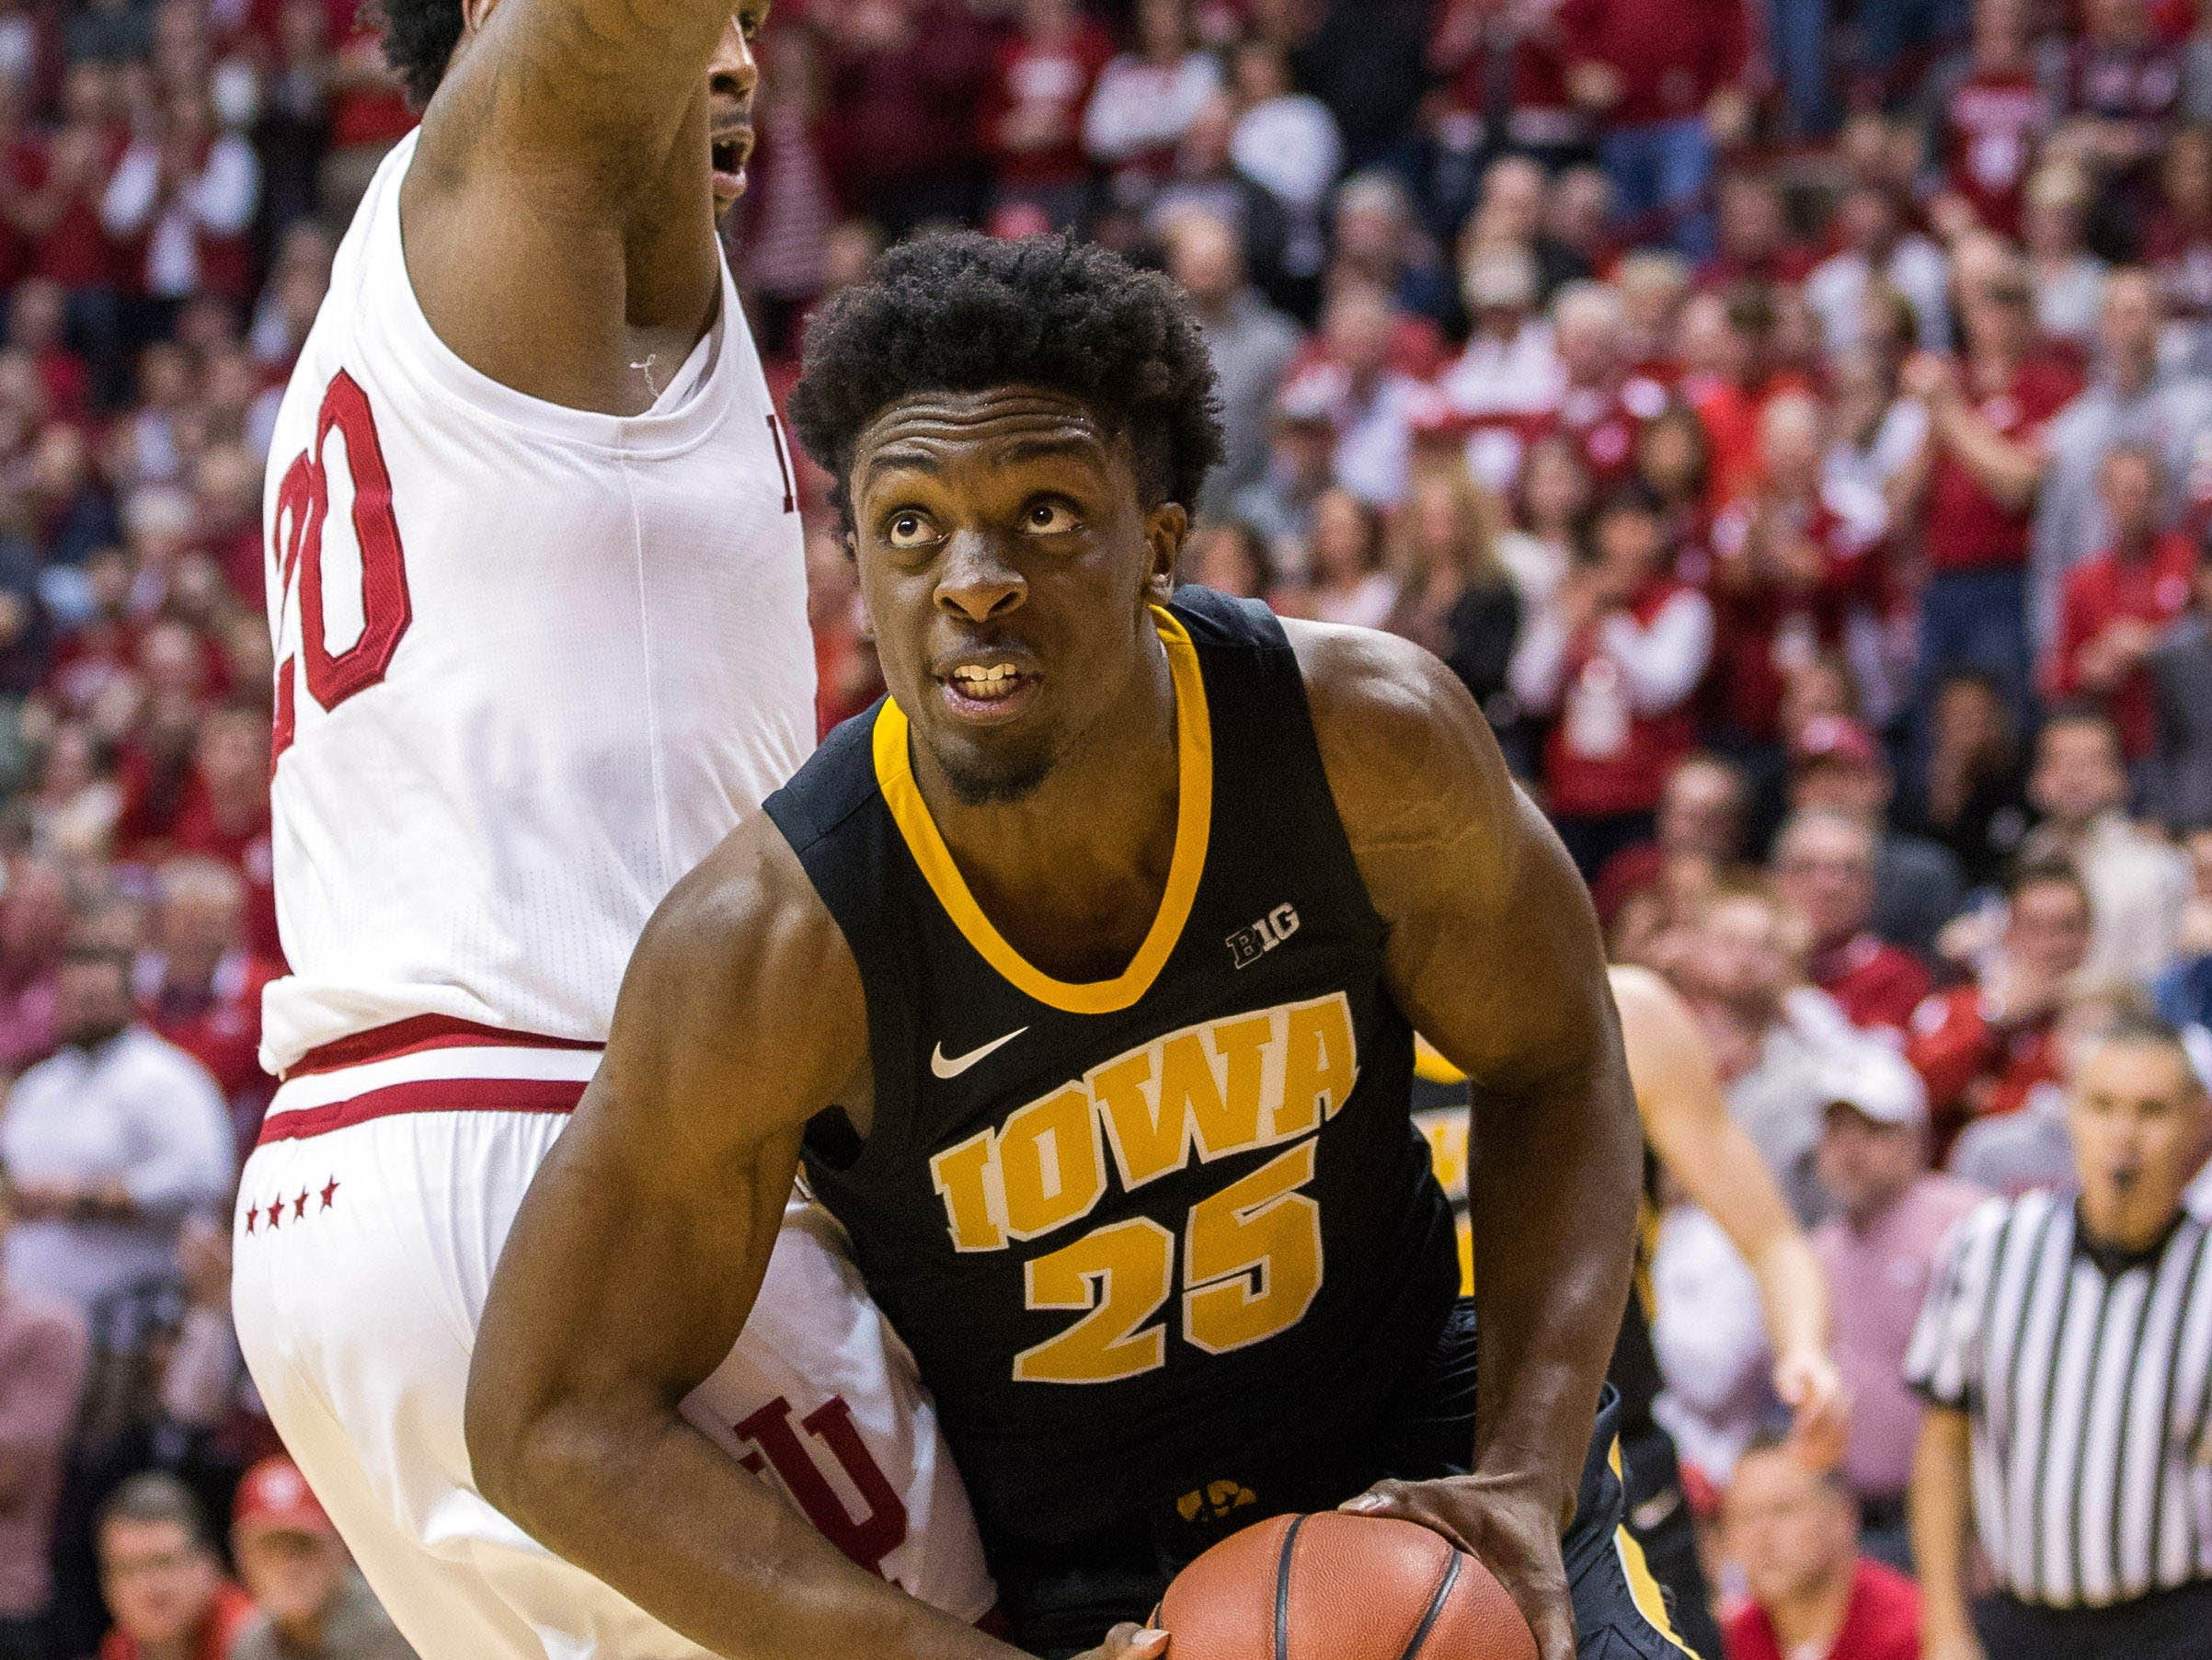 Iowa Hawkeyes forward Tyler Cook (25) looks to shoot the ball around Indiana Hoosiers forward De'Ron Davis (20) in the second half at Assembly Hall. Mandatory Credit: Trevor Ruszkowski-USA TODAY Sports